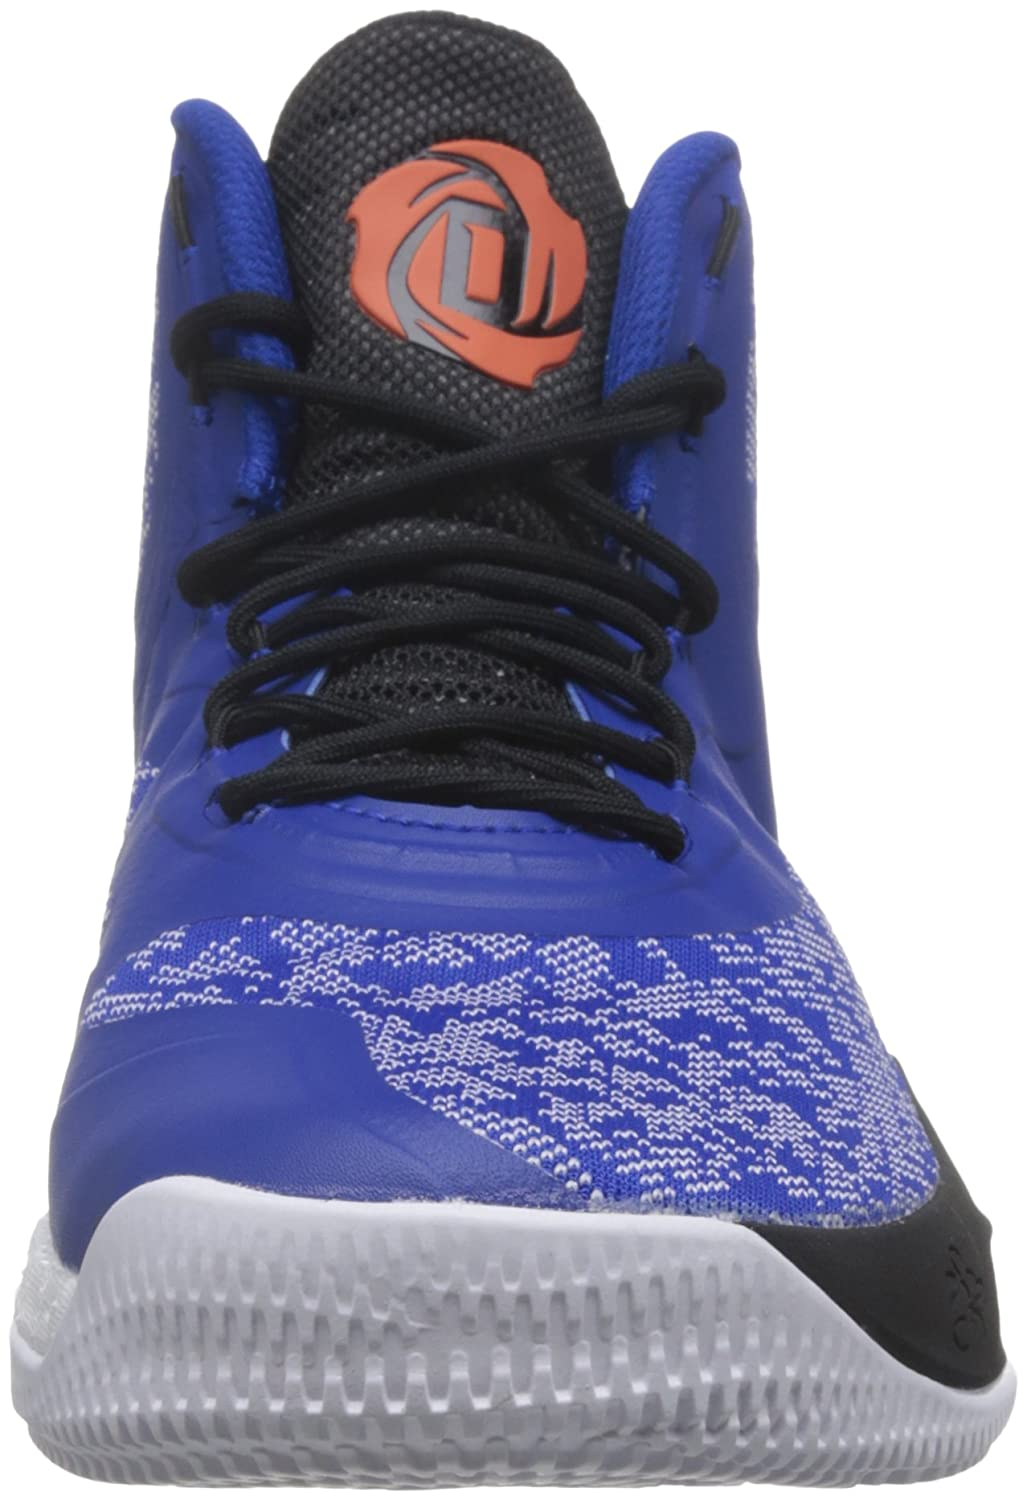 best loved 7523c b4fa1 adidas D Rose 8, Chaussures de Basketball Homme  Amazon.fr  Chaussures et  Sacs